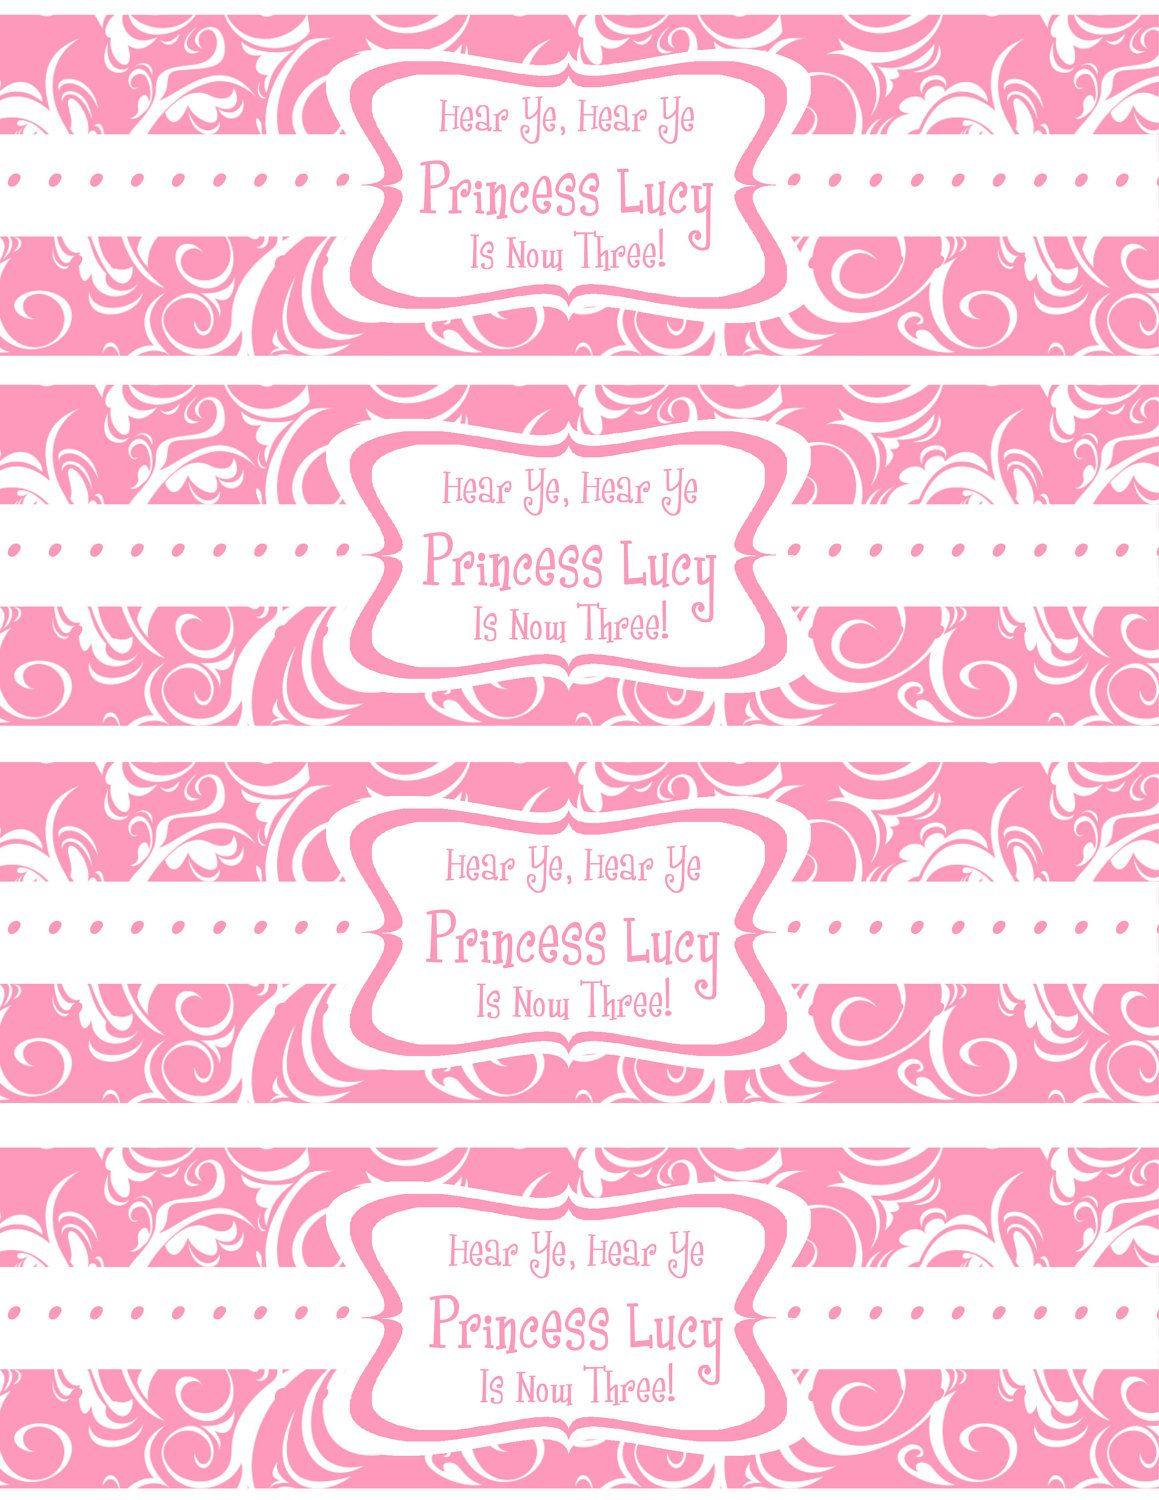 Free Printable Water Bottle Labels Template | Kreatief | Pinterest - Free Printable Water Bottle Label Template